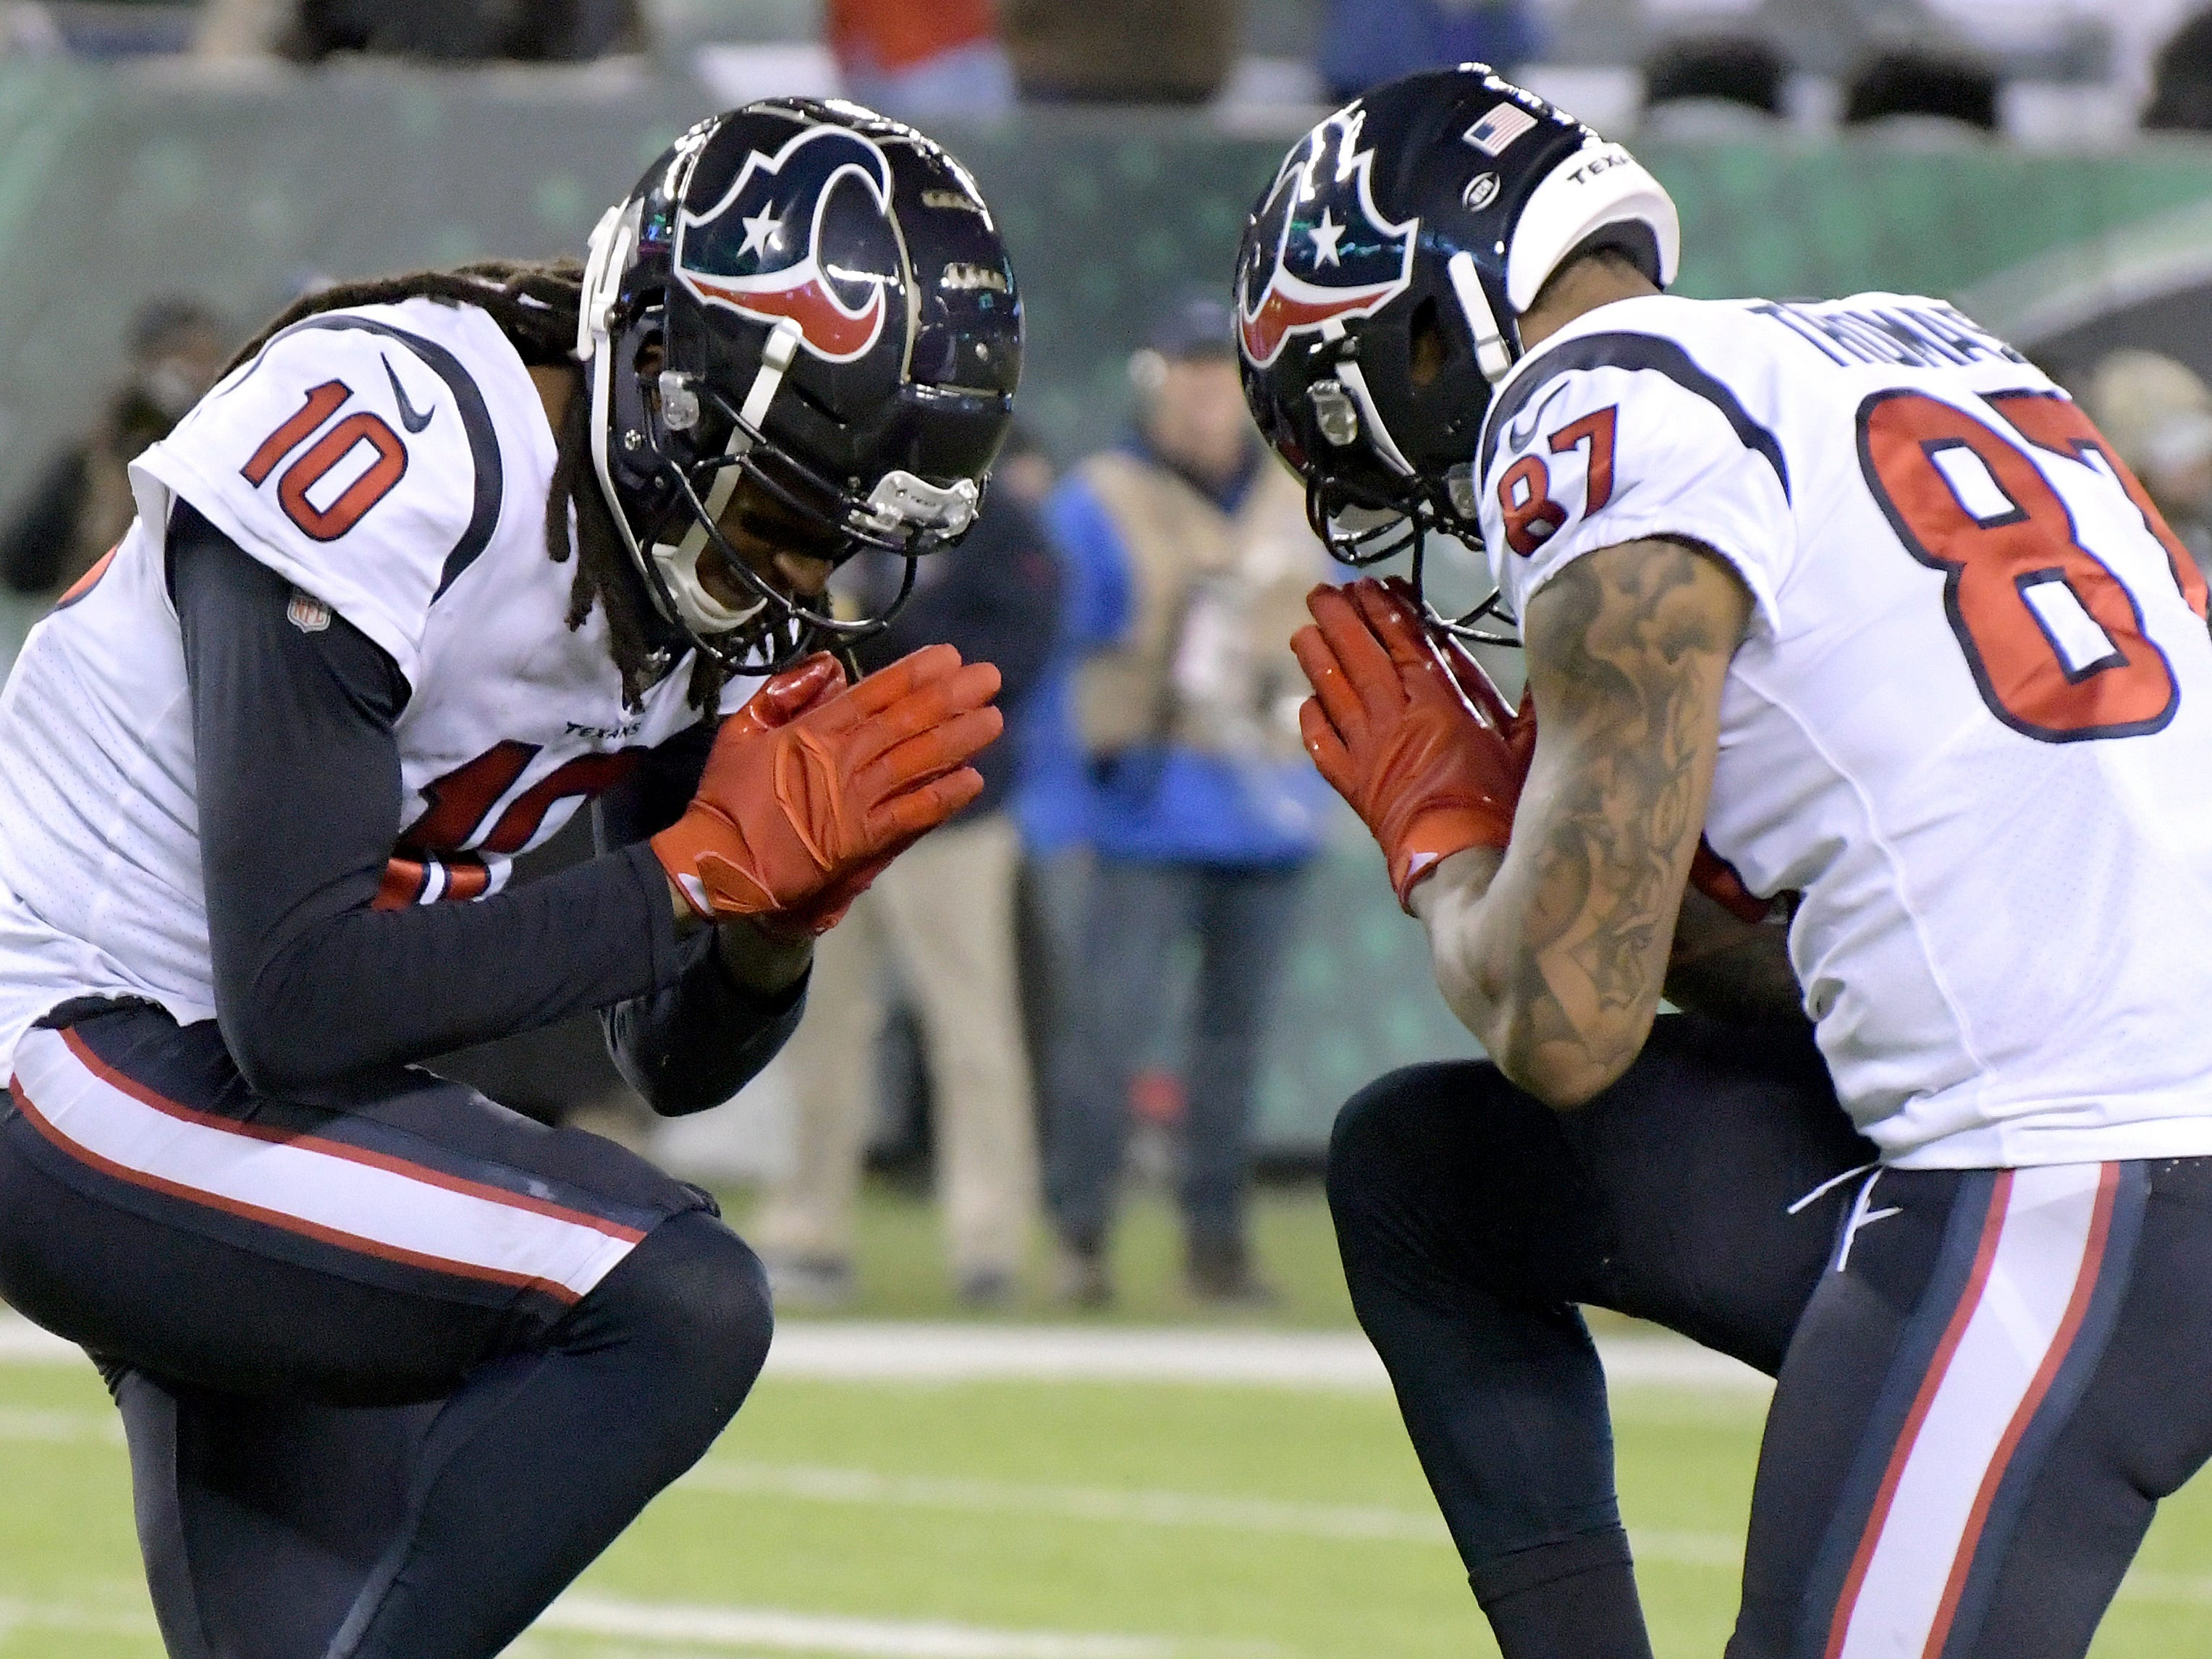 Houston Texans wide receiver DeAndre Hopkins (10) celebrates his touchdown catch with wide receiver Demaryius Thomas (87) during the first half of an NFL football game, Saturday, Dec. 15, 2018, in East Rutherford, N.J.